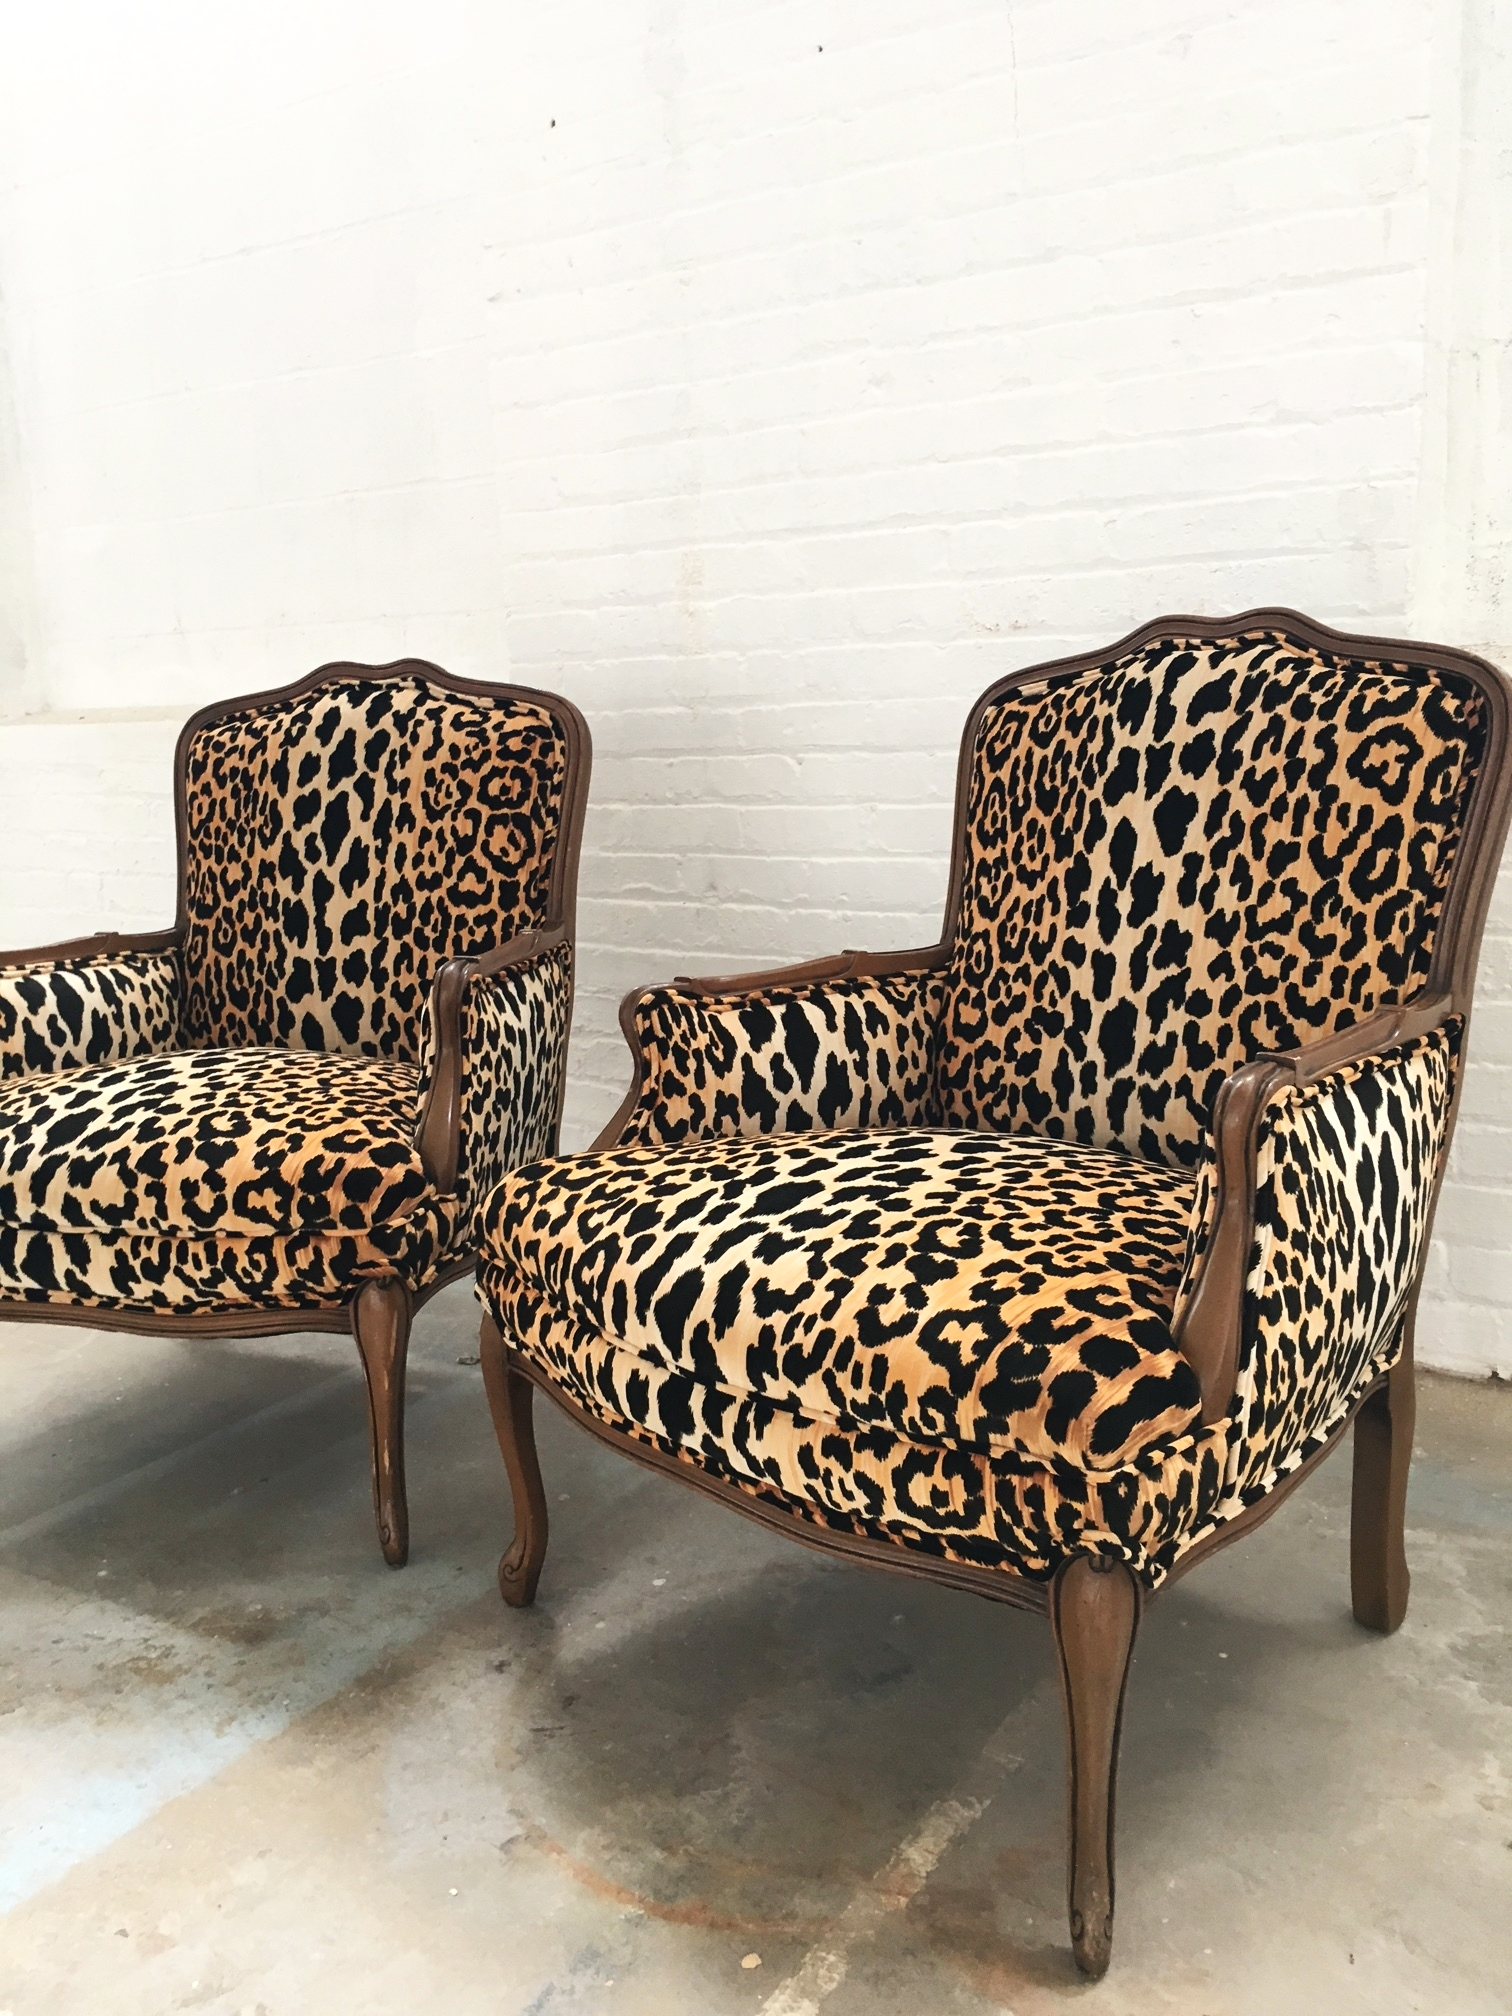 Recovered Interior Leopard Chairs